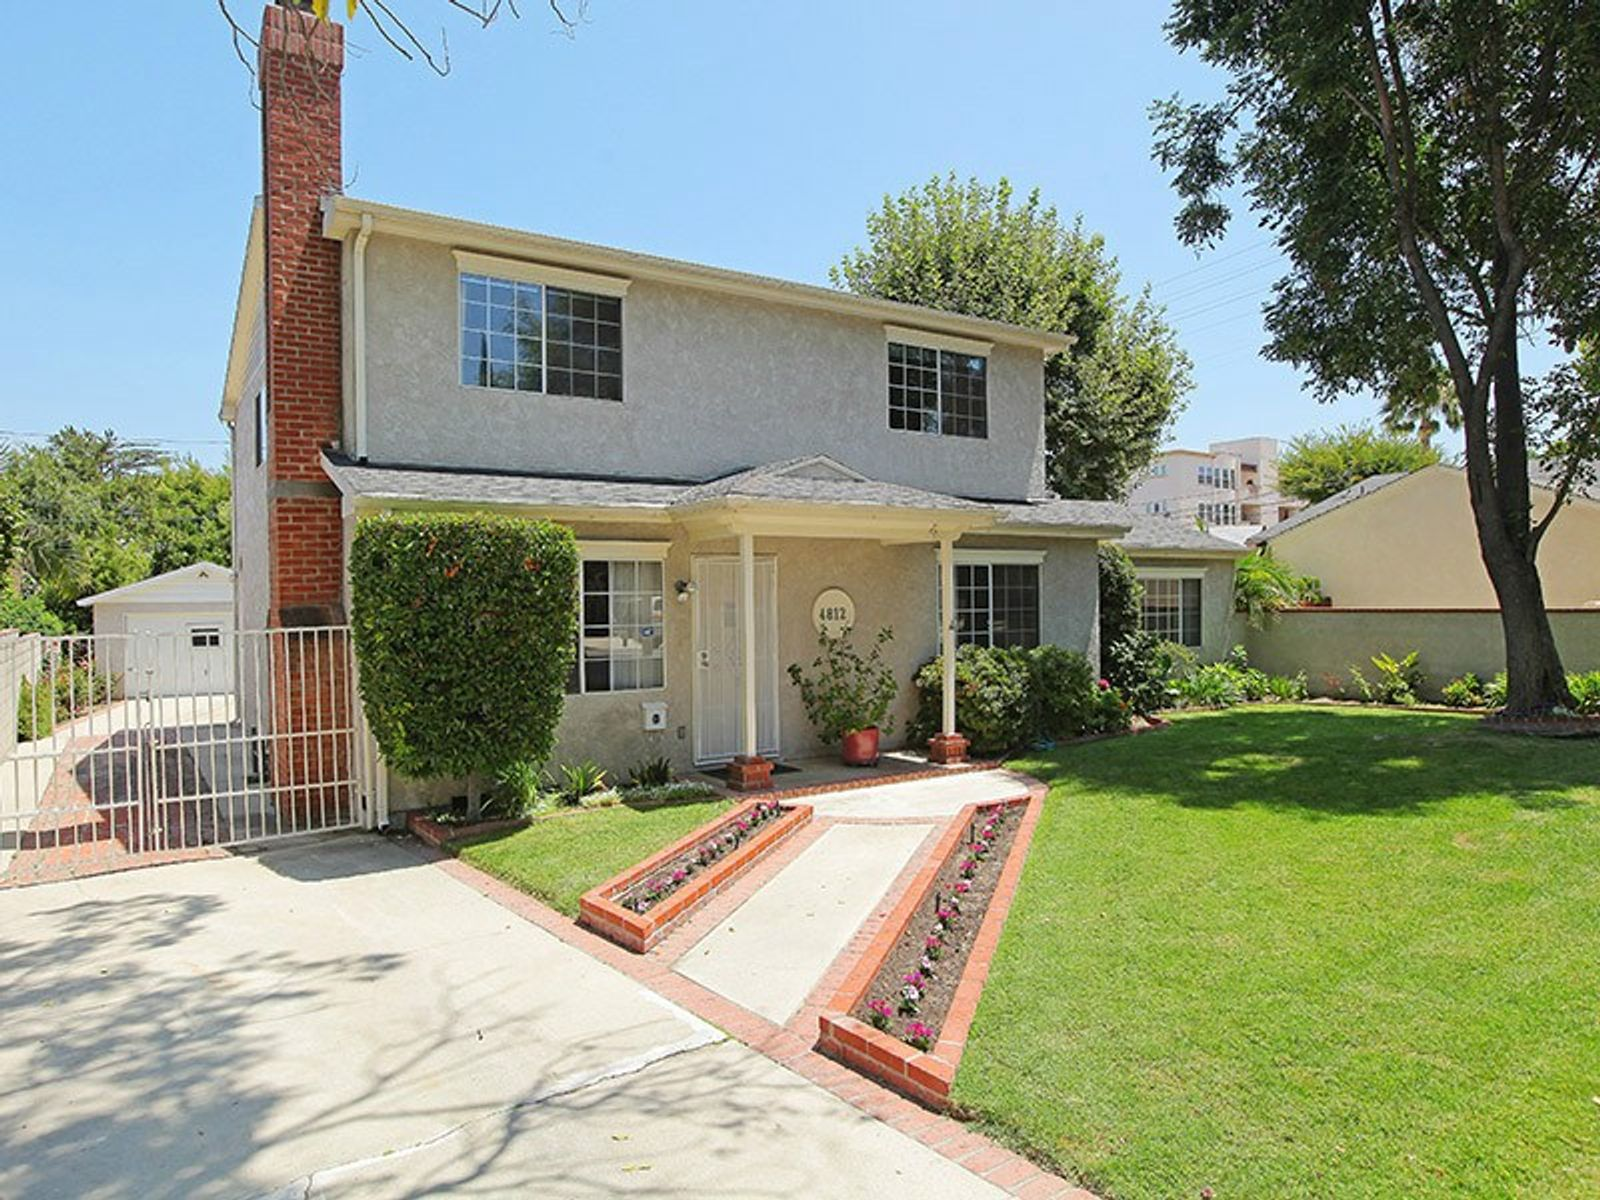 4812 Sancola Ave, North Hollywood CA Single Family Home - Los Angeles Real Estate